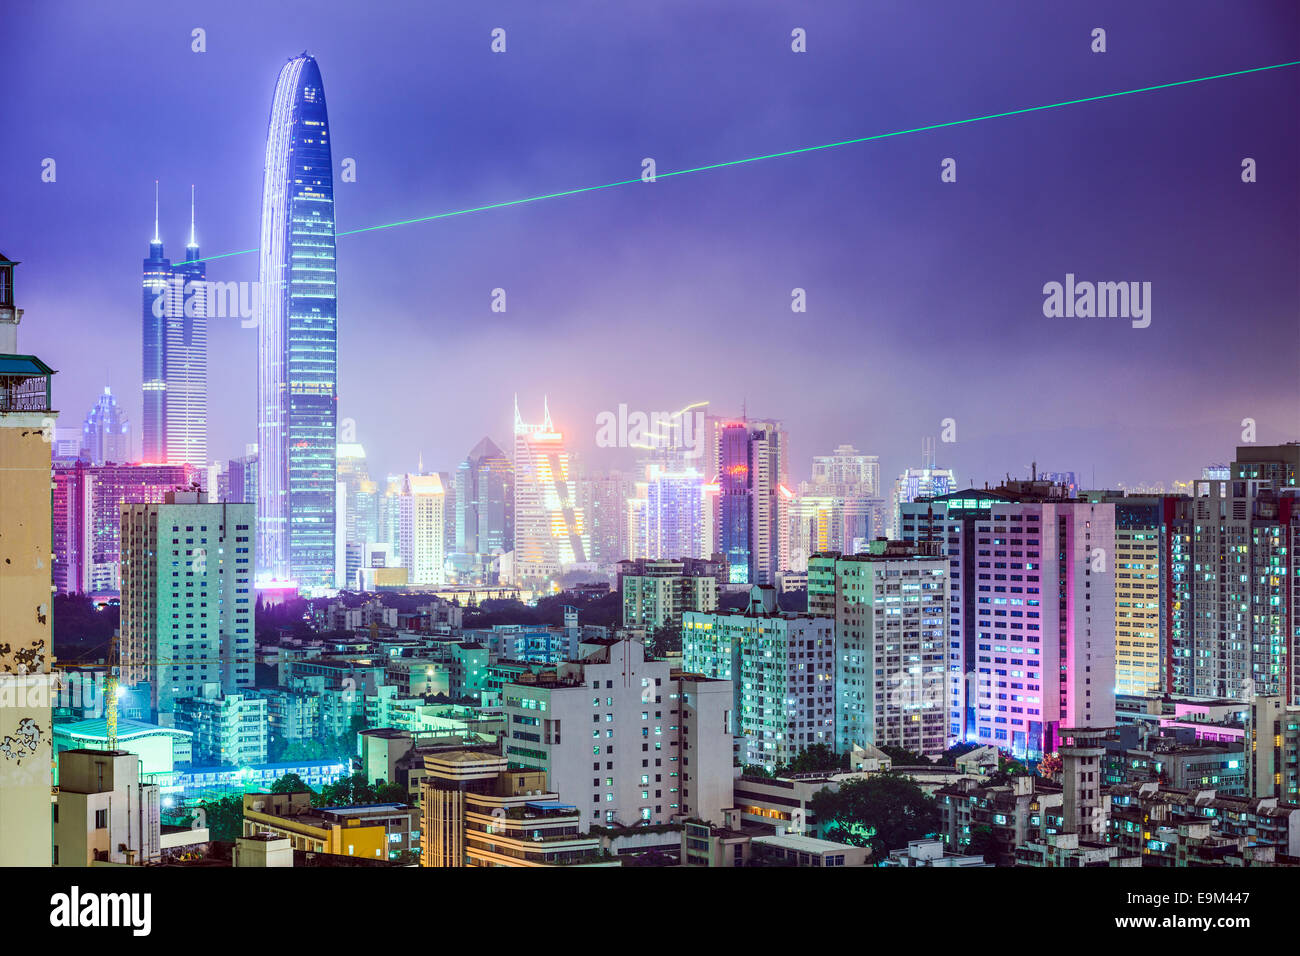 Shenzhen, China city skyline at night. Stock Photo